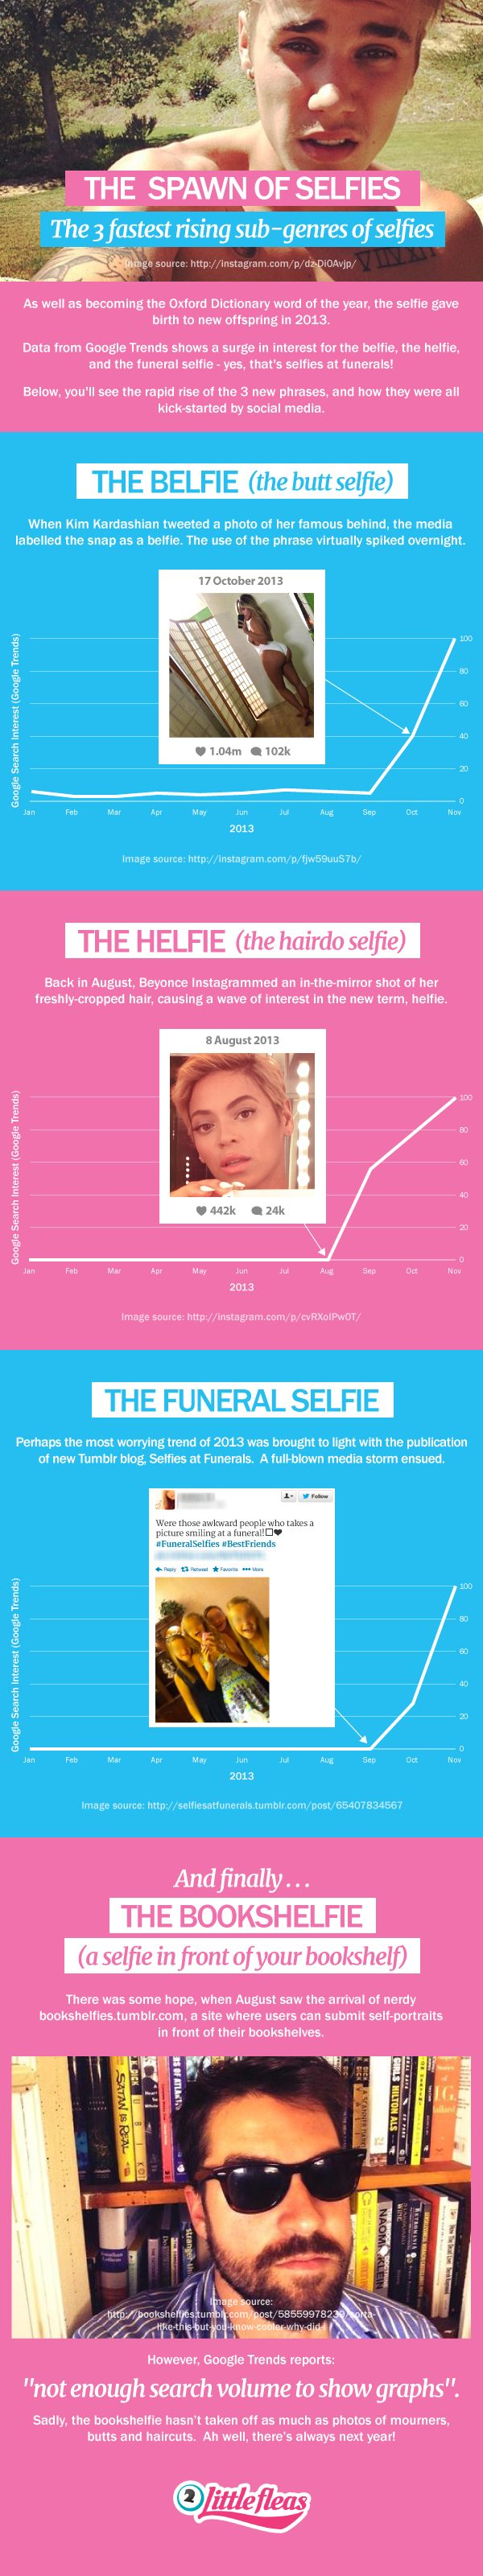 The 4 Fastest Growing Sub-Genres of Selfies